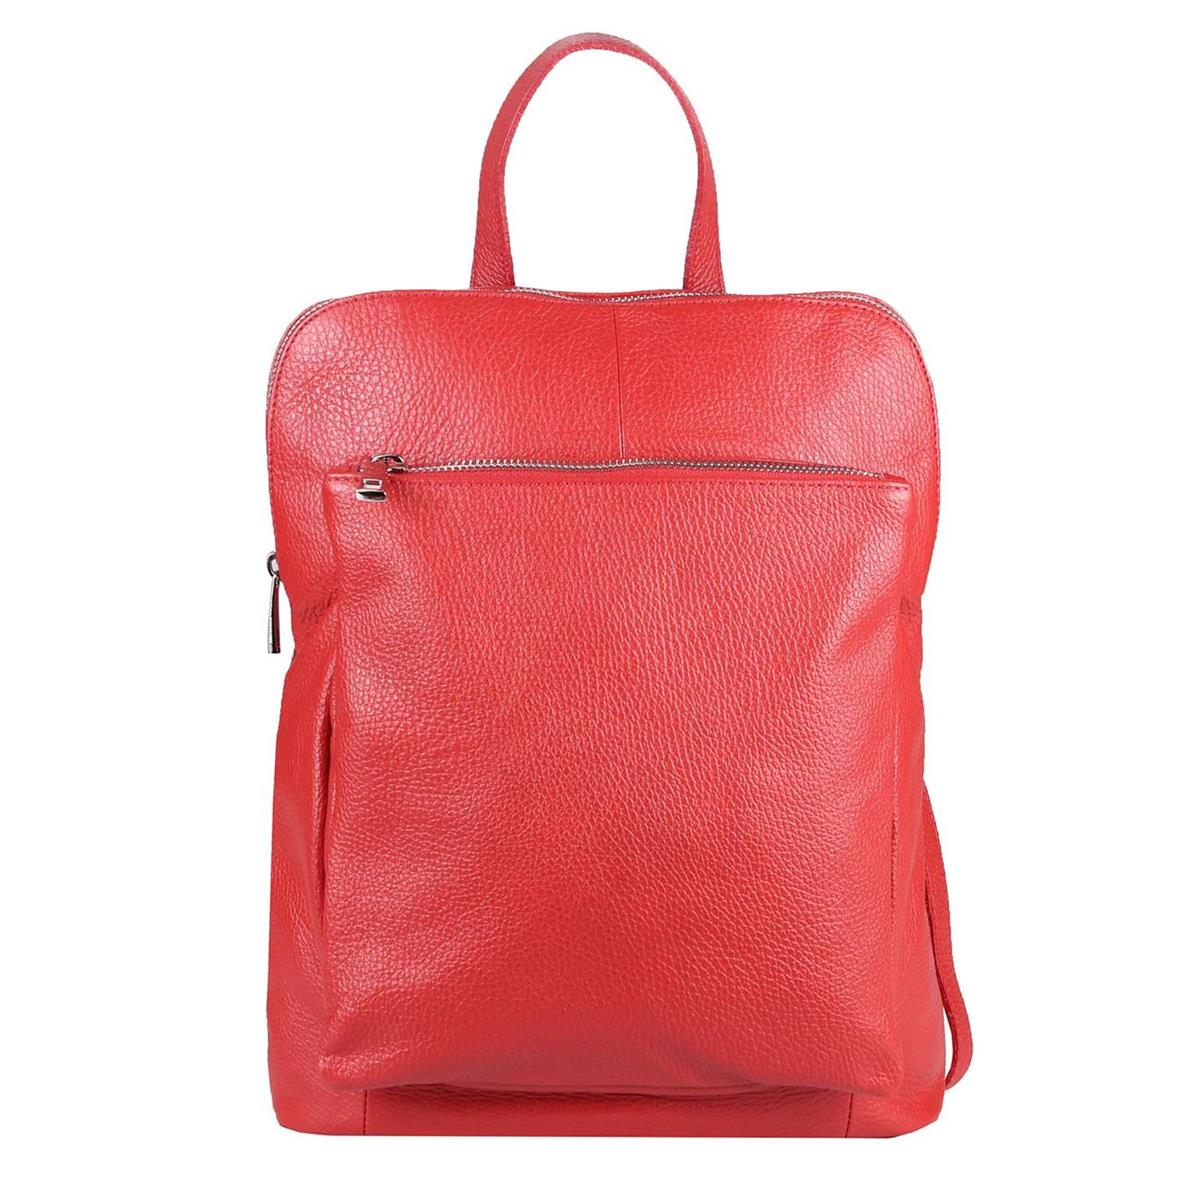 ITALy-DAMEN-LEDER-Reise-RUCKSACK-SchulterTasche-Shopper-Backpack-Ledertasche-BAG Indexbild 63